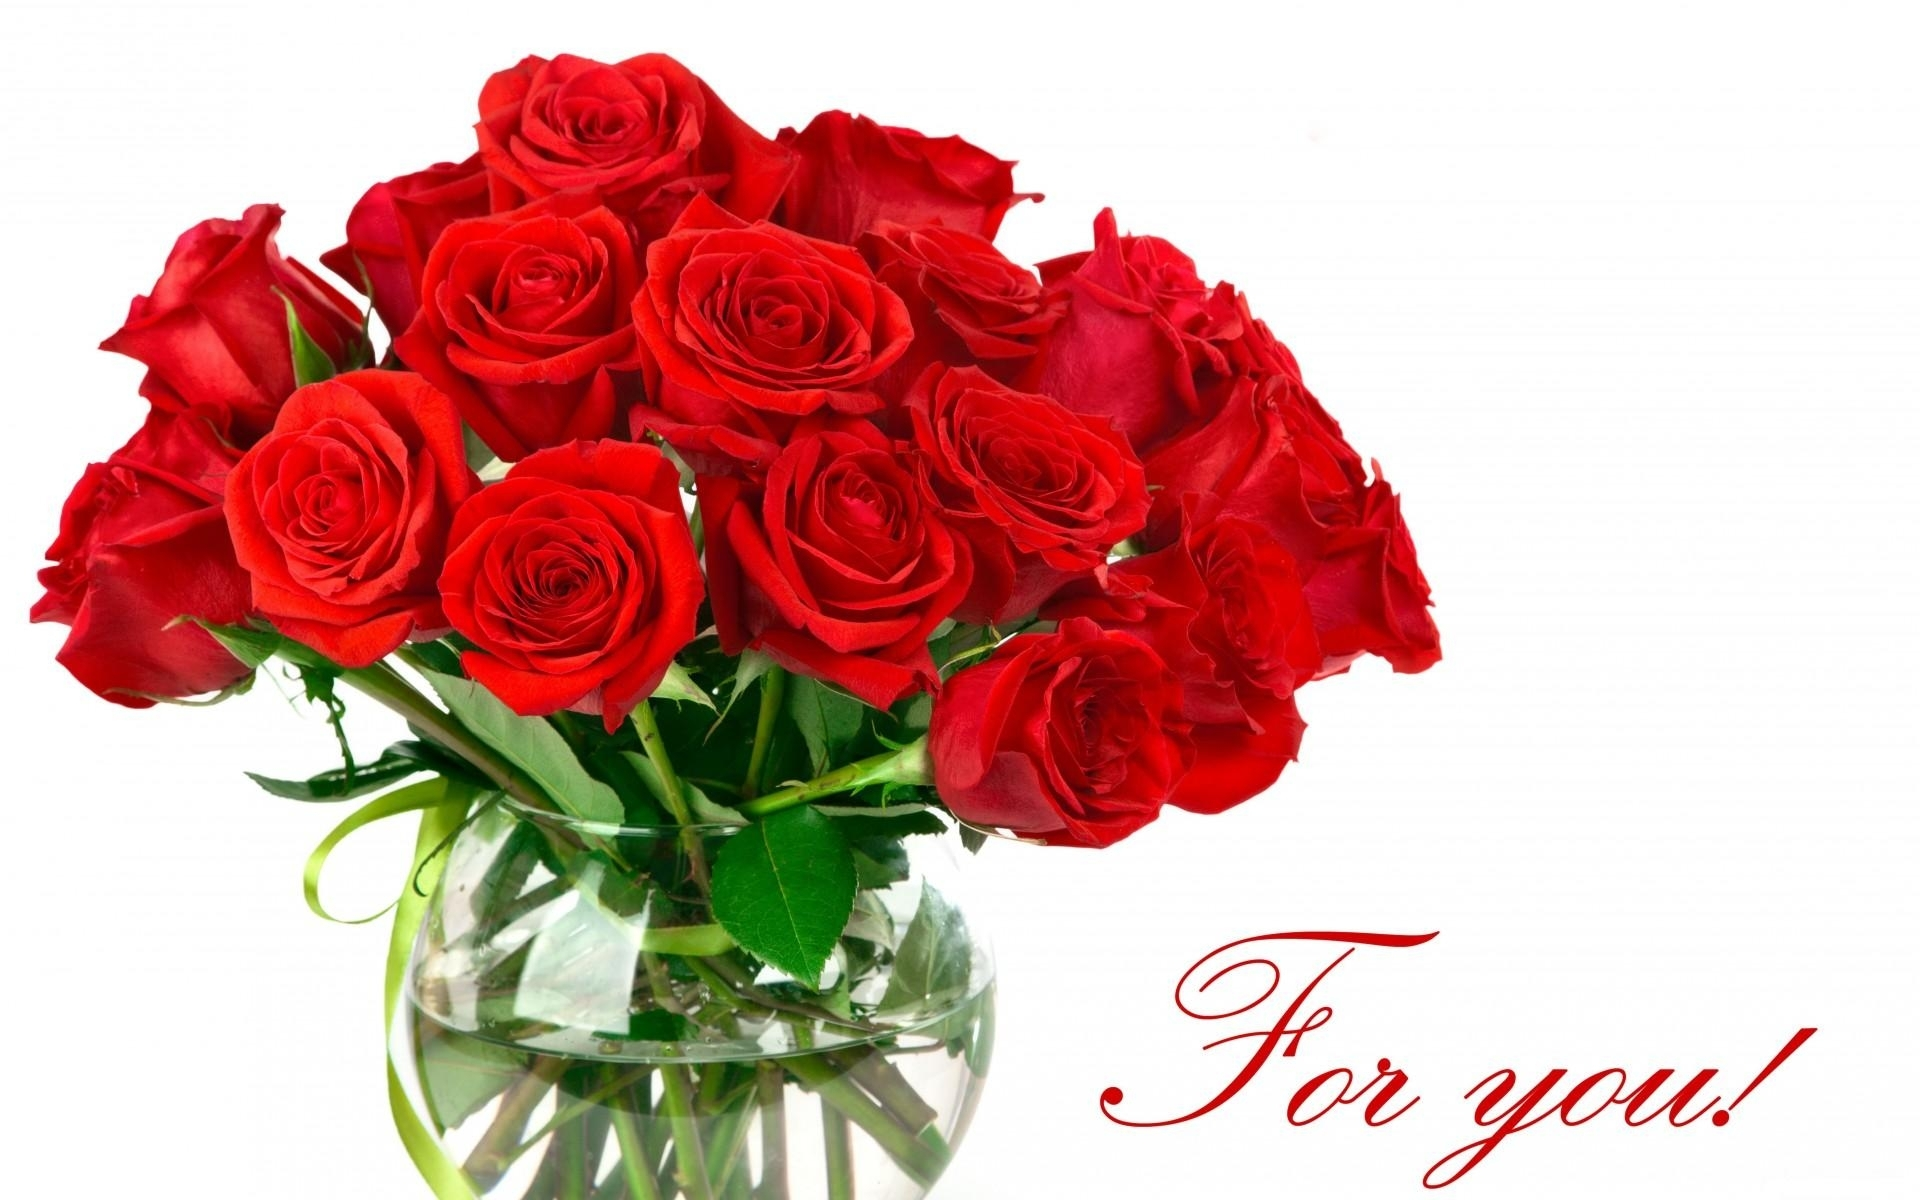 Red Roses Bunch Wallpaper 1920x1200 31605